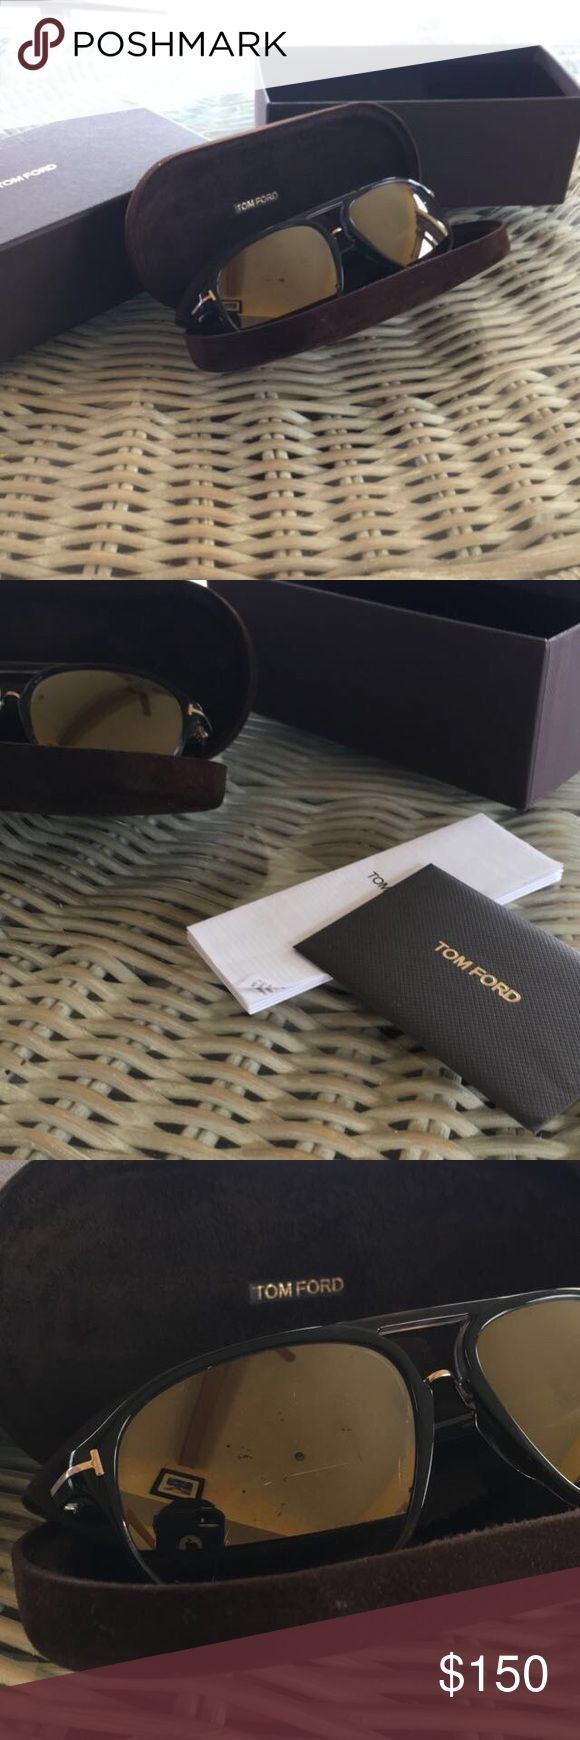 Men's Tom Ford Sunglasses Men's Tom Ford's. Everything included, box, case, papers, cloth. Asking 150, offers will be entertained. Tom Ford Accessories Sunglasses